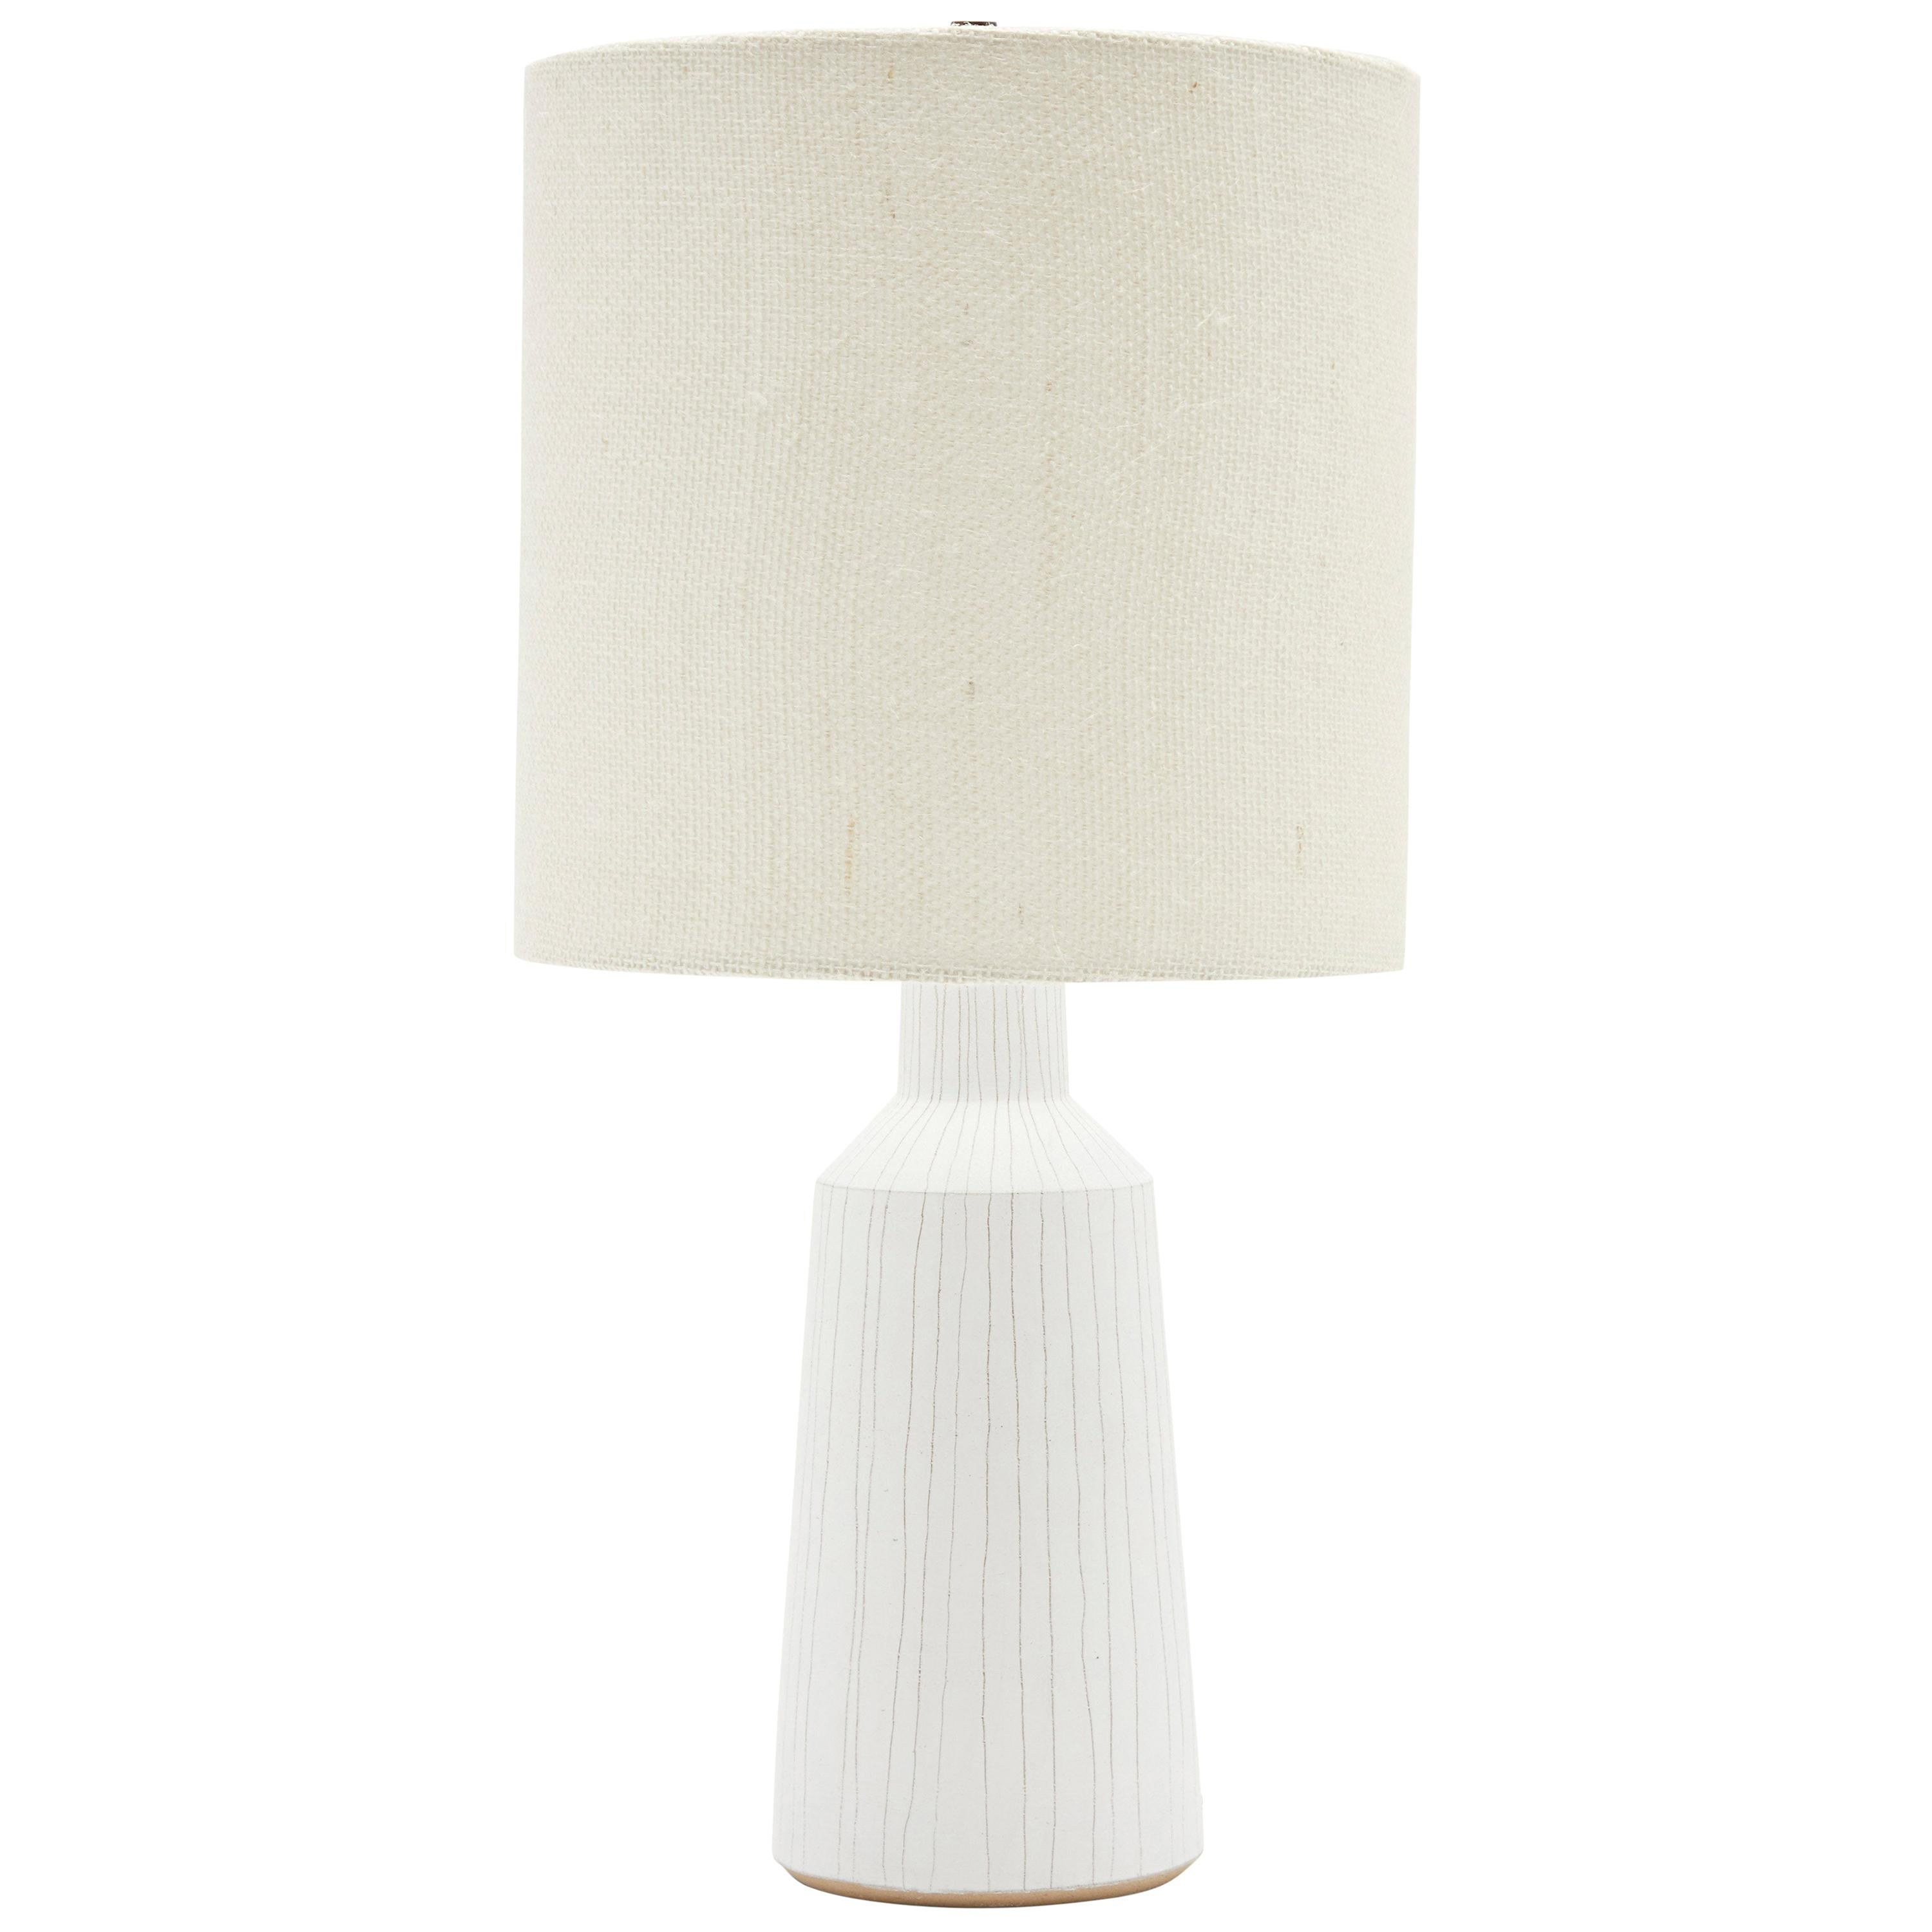 White Striped Lamp by Victoria Morris for Lawson-Fenning